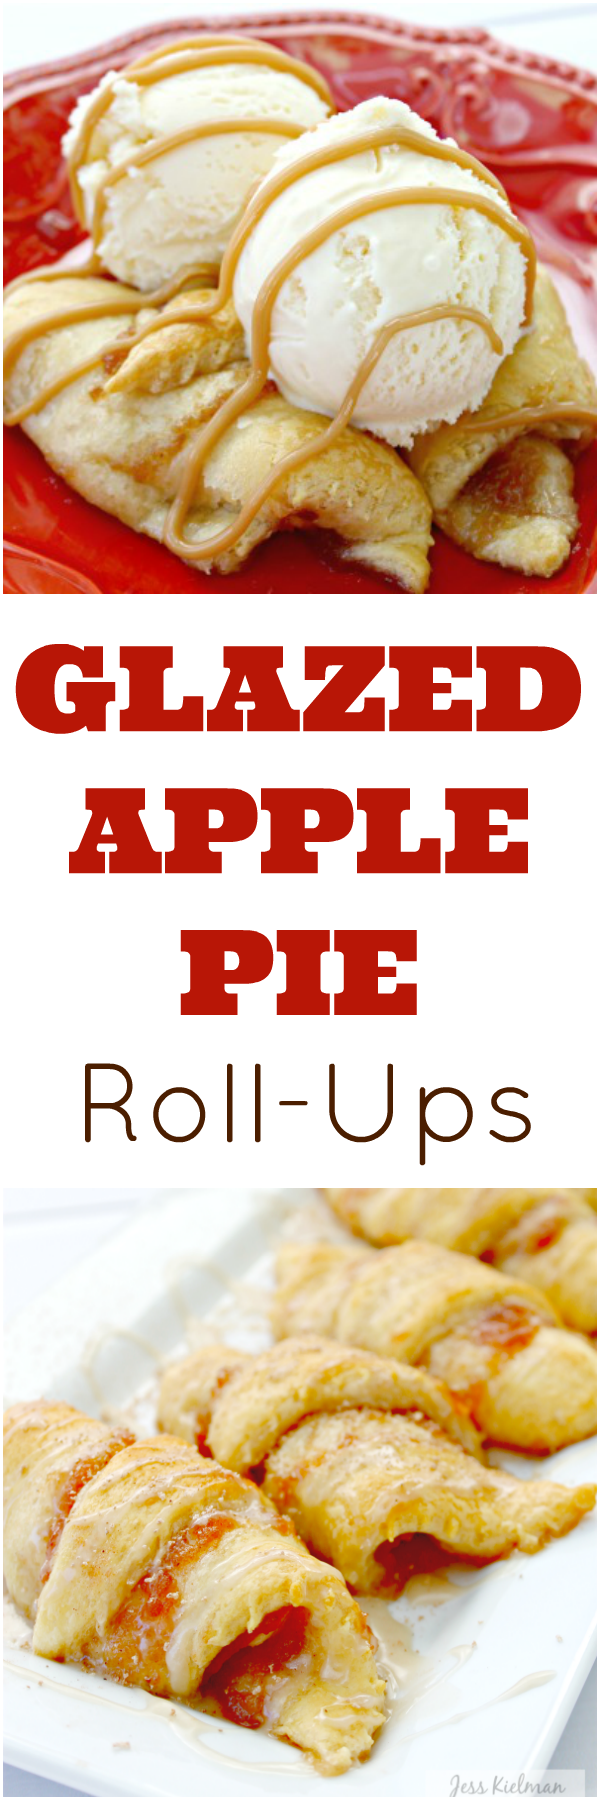 If you love apple pie, you are going to flip over these easy Glazed Apple Pie Roll-Ups! They are delicous and only take a few minutes to prepare!